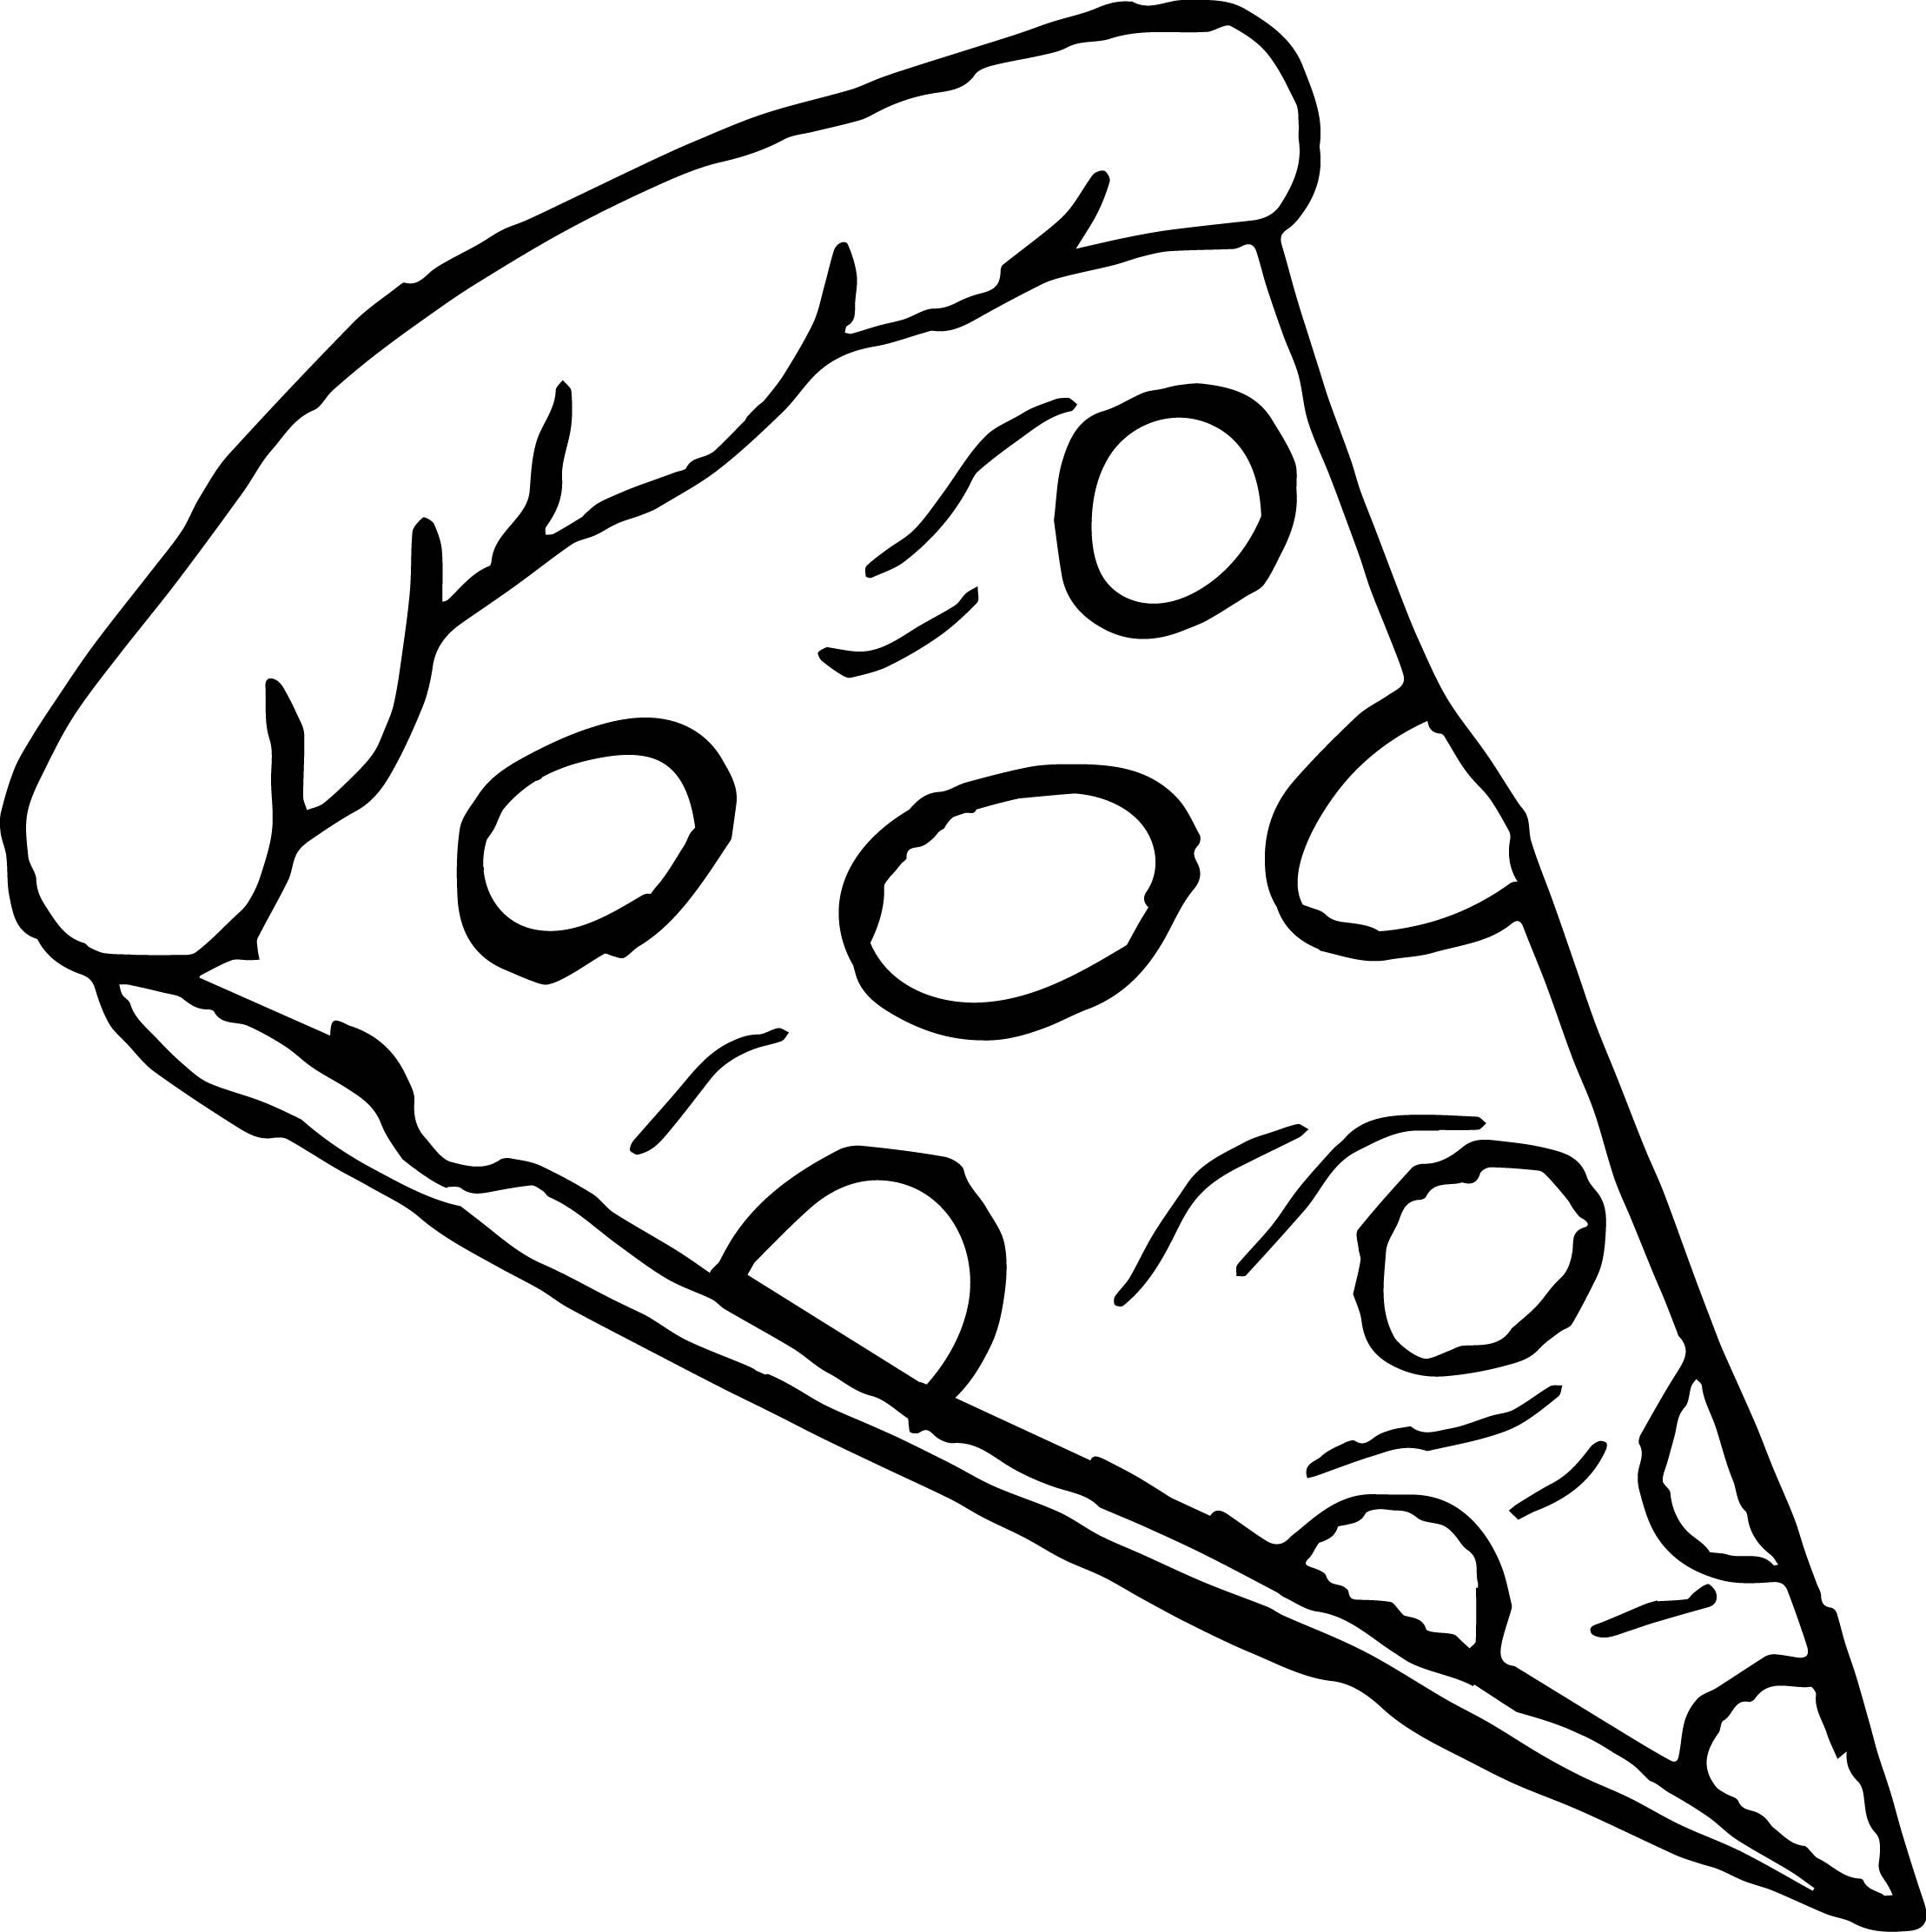 2217x2224 Pizza Coloring Page Jacb Me In Hut Pages On Pizza Hut Coloring